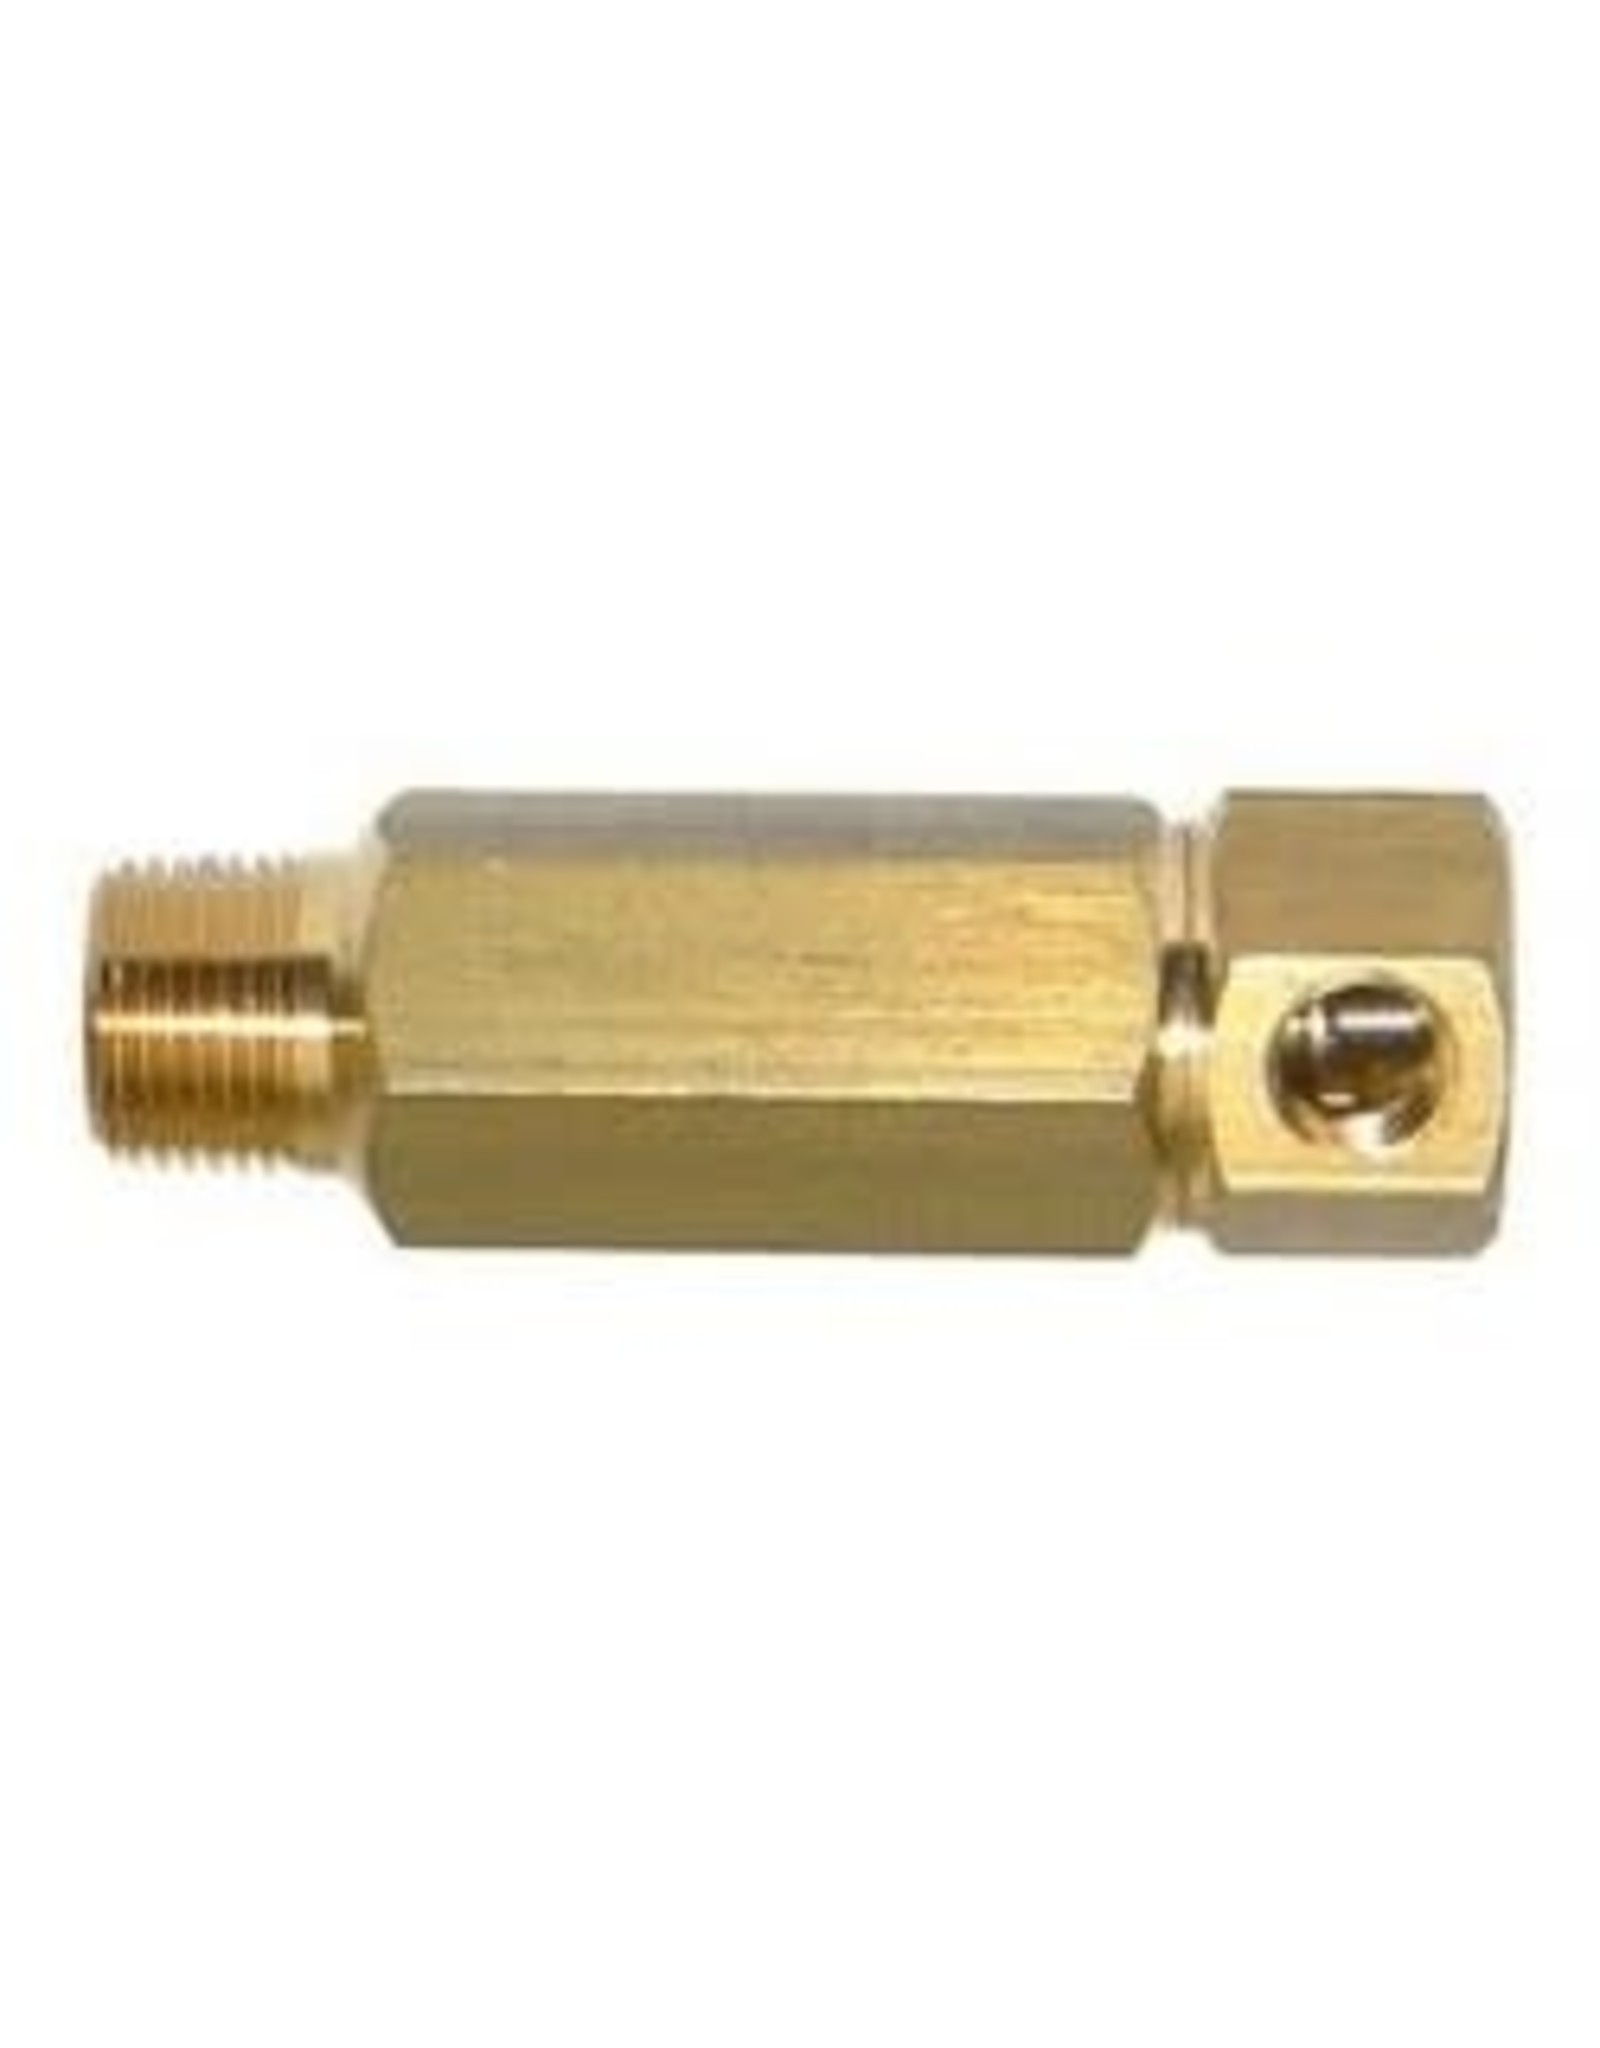 """Thermo Valve 7144 cat pump 3/8"""" Inlet 165 Degrees F"""